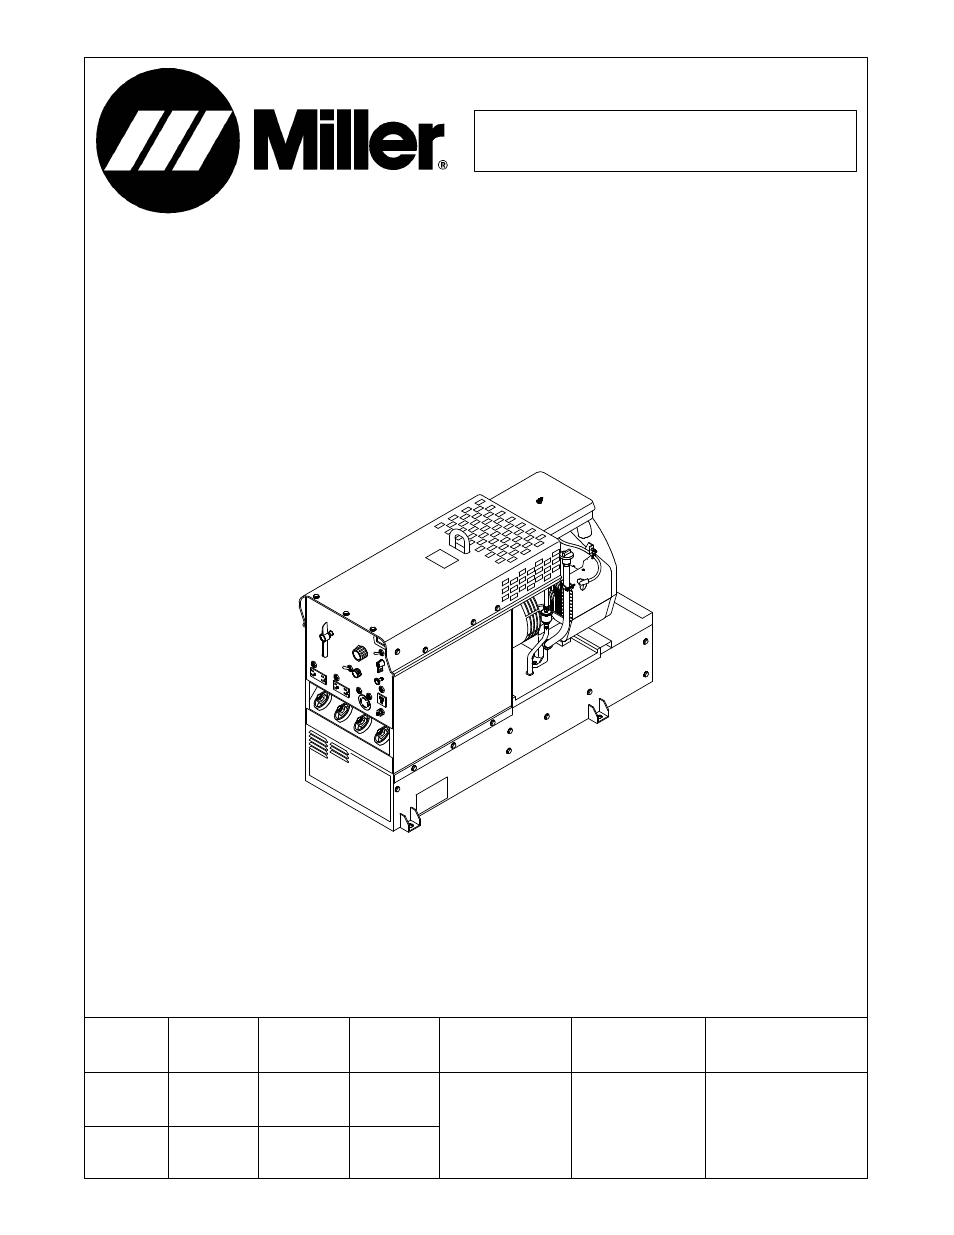 miller legend wiring diagram miller image wiring miller electric legend aead 200 le user manual 68 pages on miller legend wiring diagram